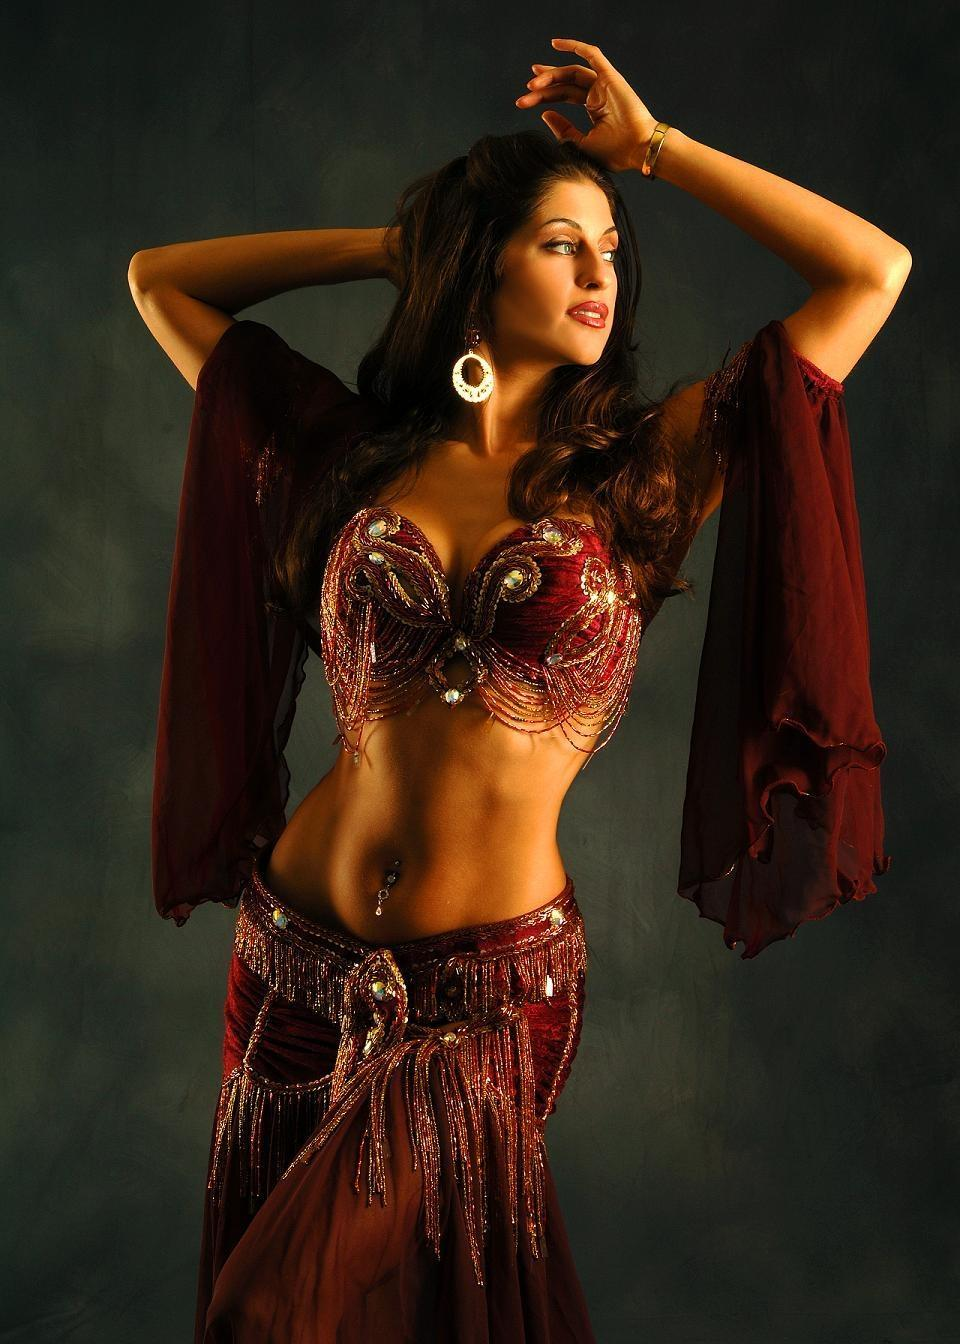 Do you ever practice belly dancing?